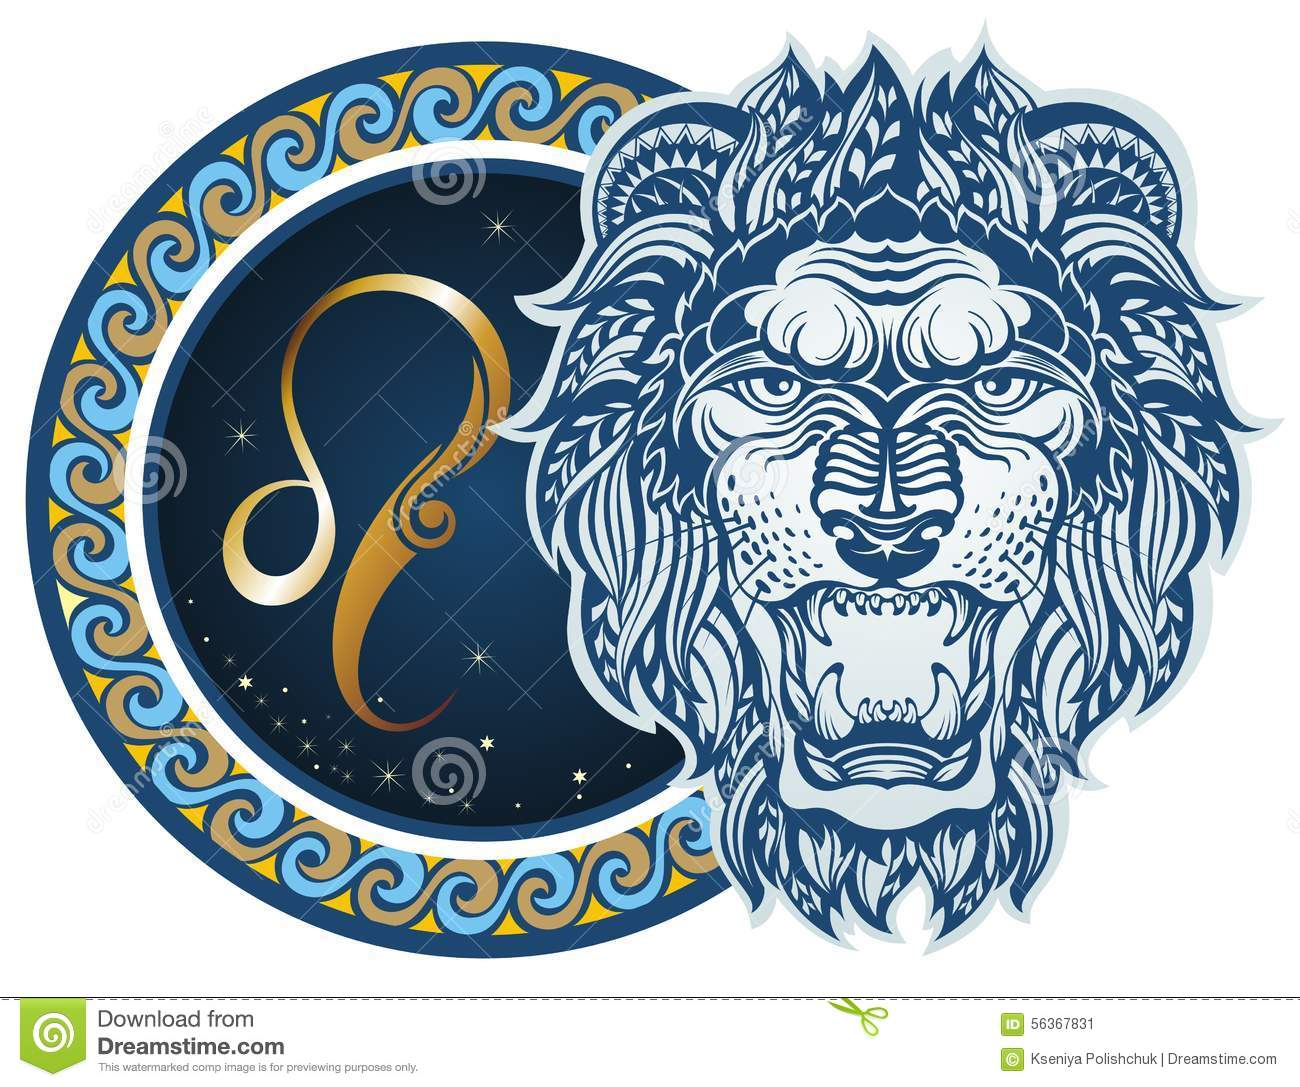 https://thumbs.dreamstime.com/z/signes-de-zodiaque-lion-56367831.jpg Leo Animal Sign